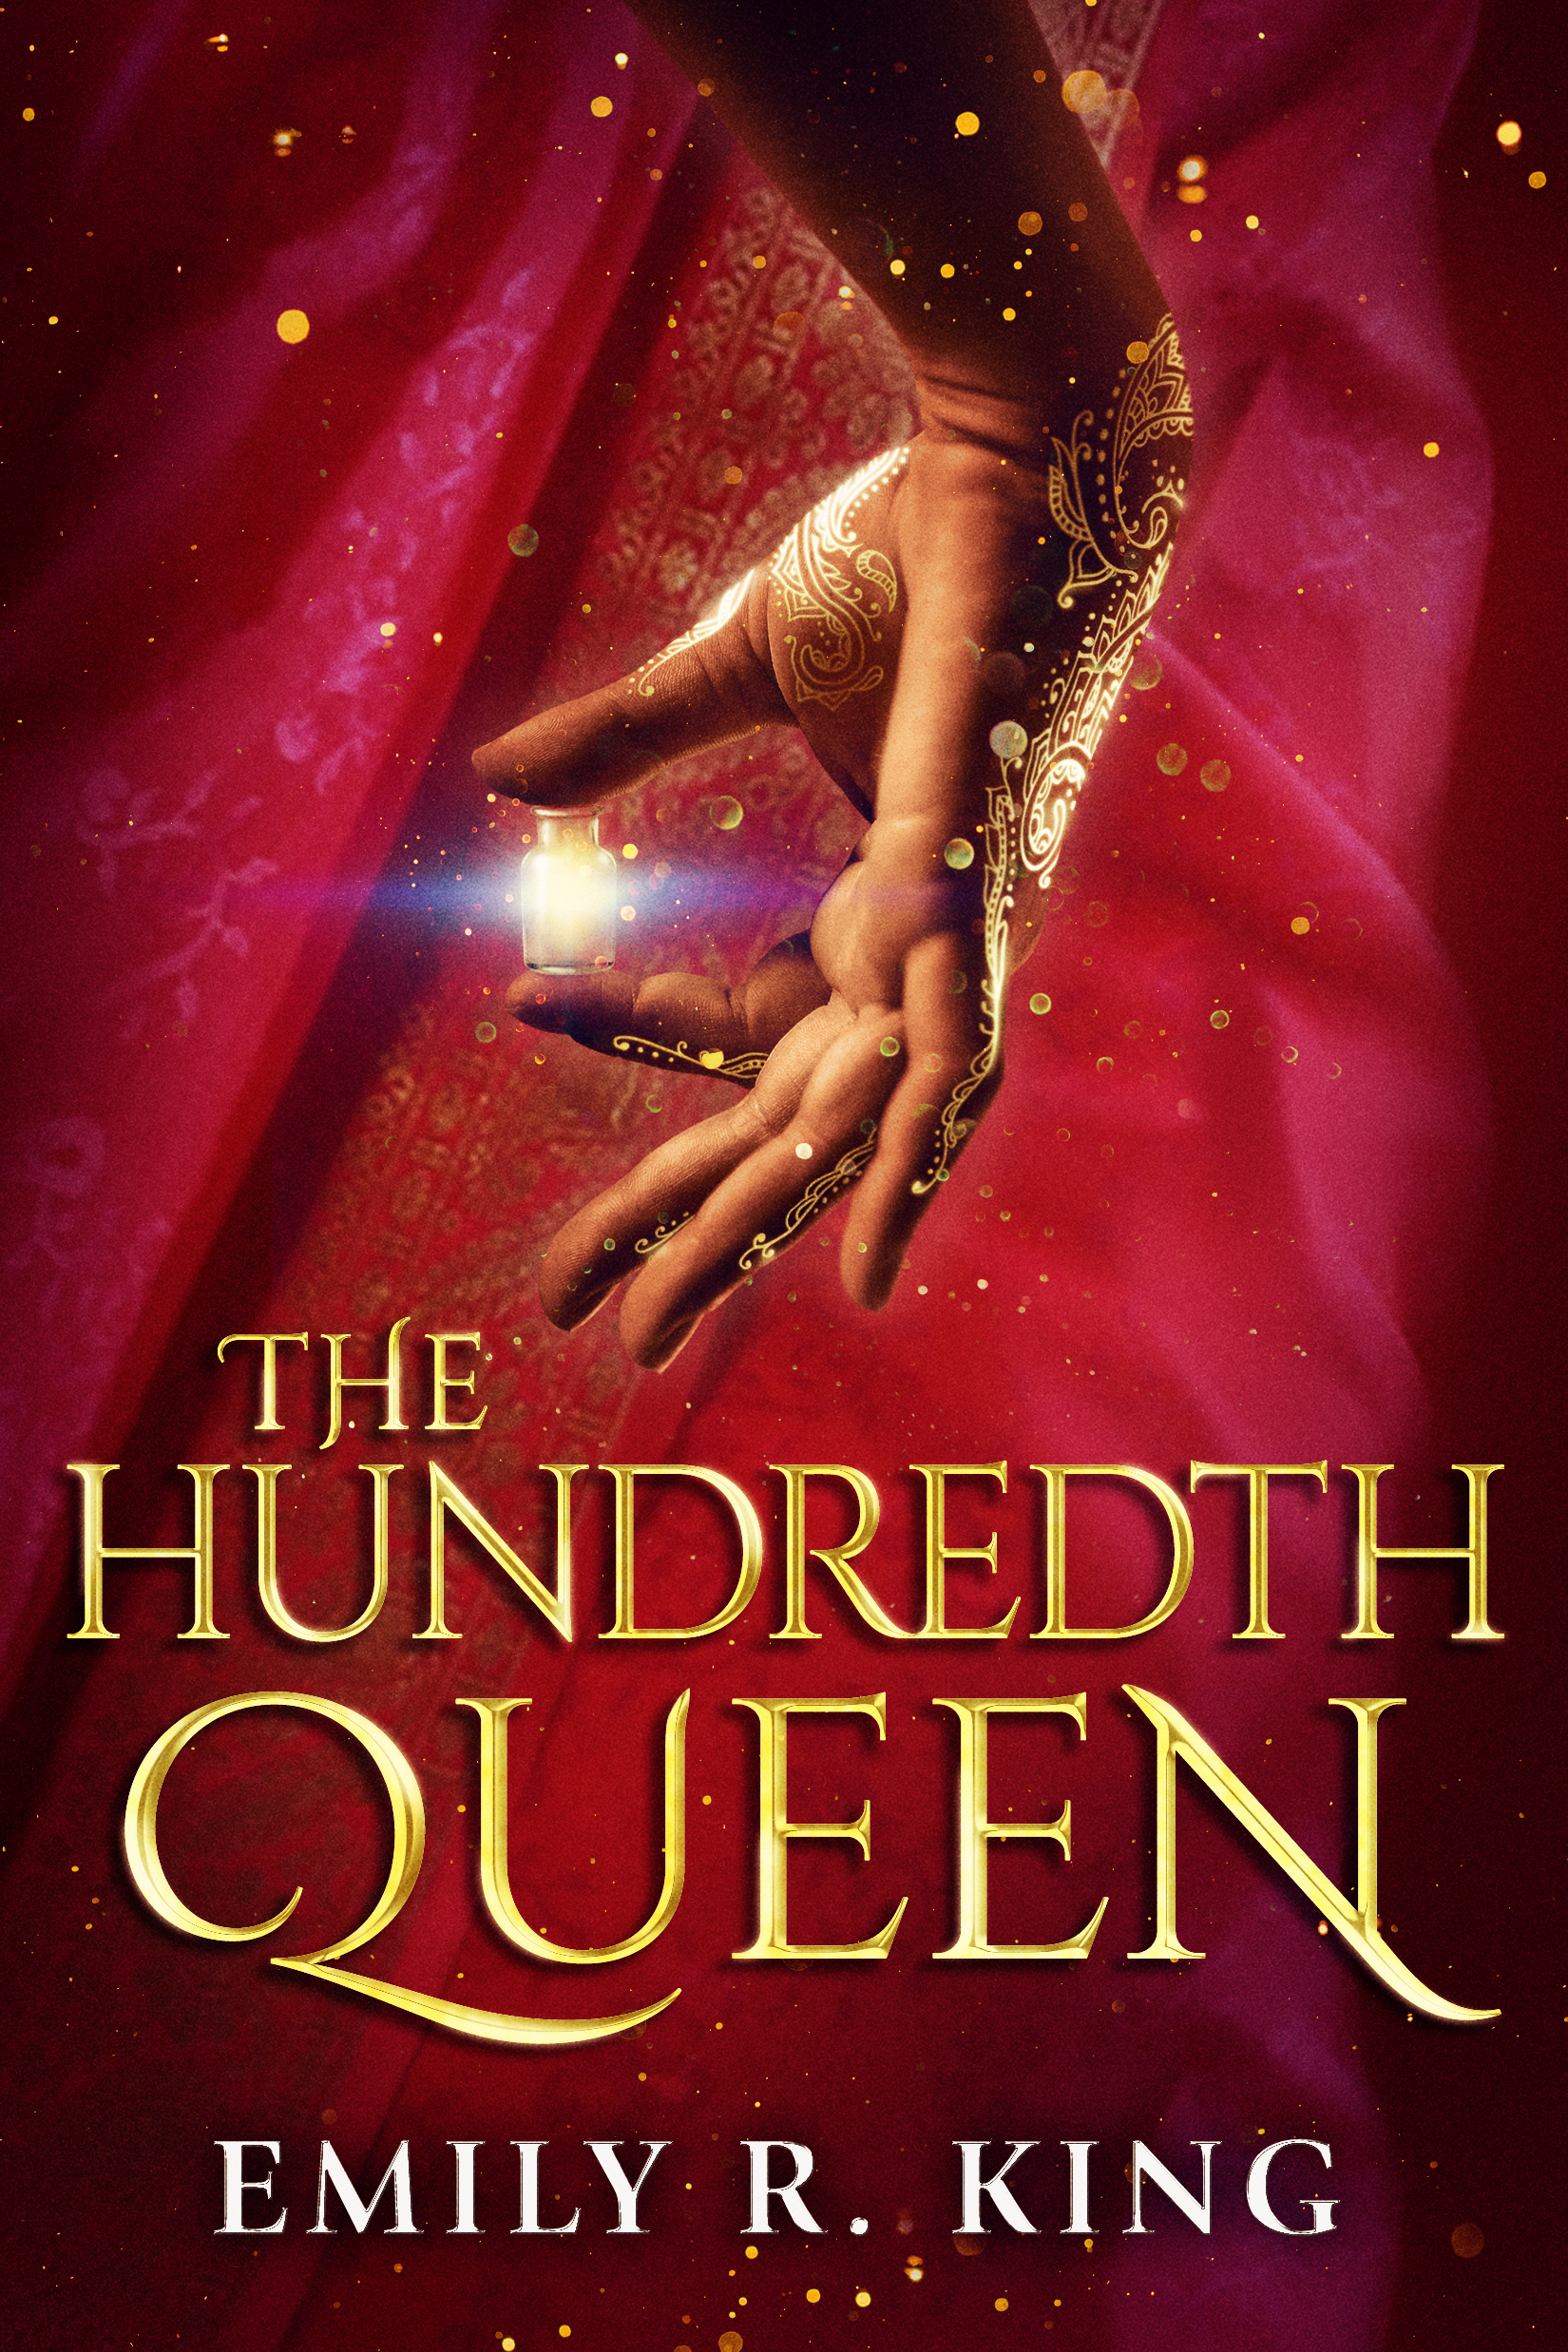 The Hundredth Queen book cover